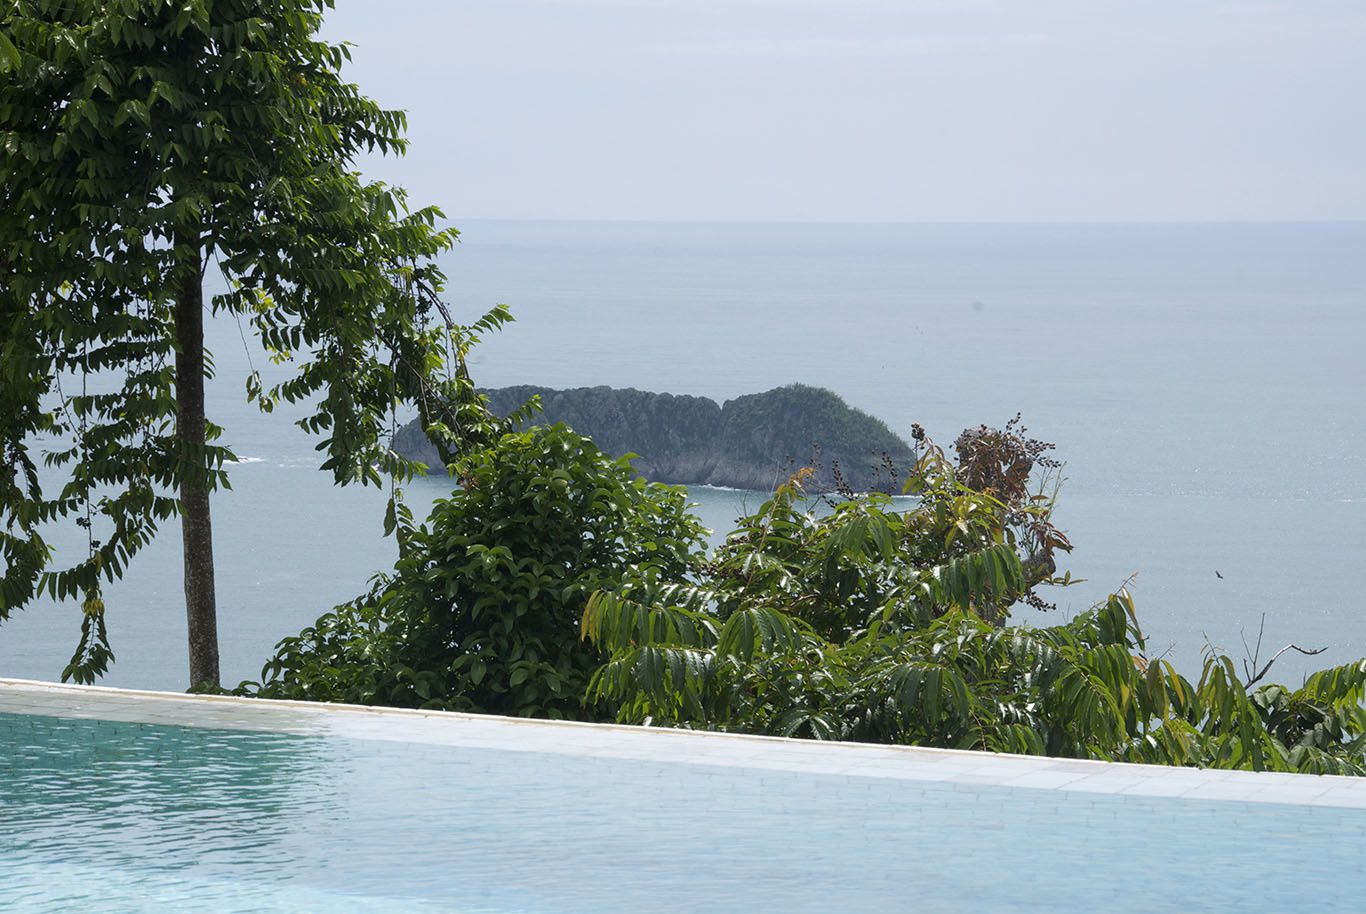 Last days in Manuel Antonio National Park. Beautiful beach, nice views, and wild life...